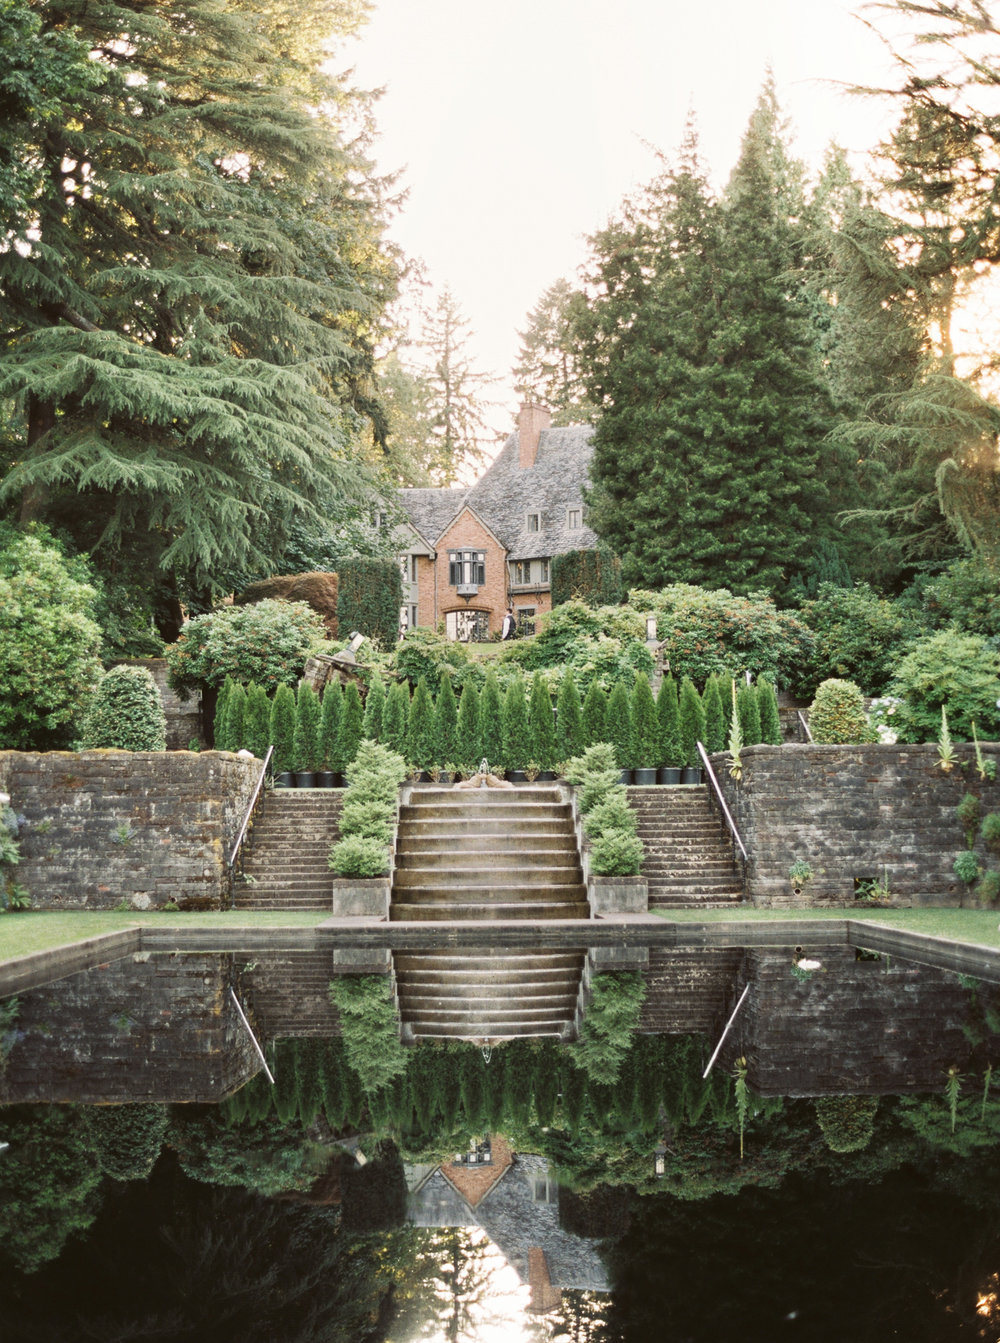 052OutliveCreative_Travel_Photographer_Videographer_Lewis&Clark_Oregon_Elegant_BlackTie_Destination_Wedding.jpg